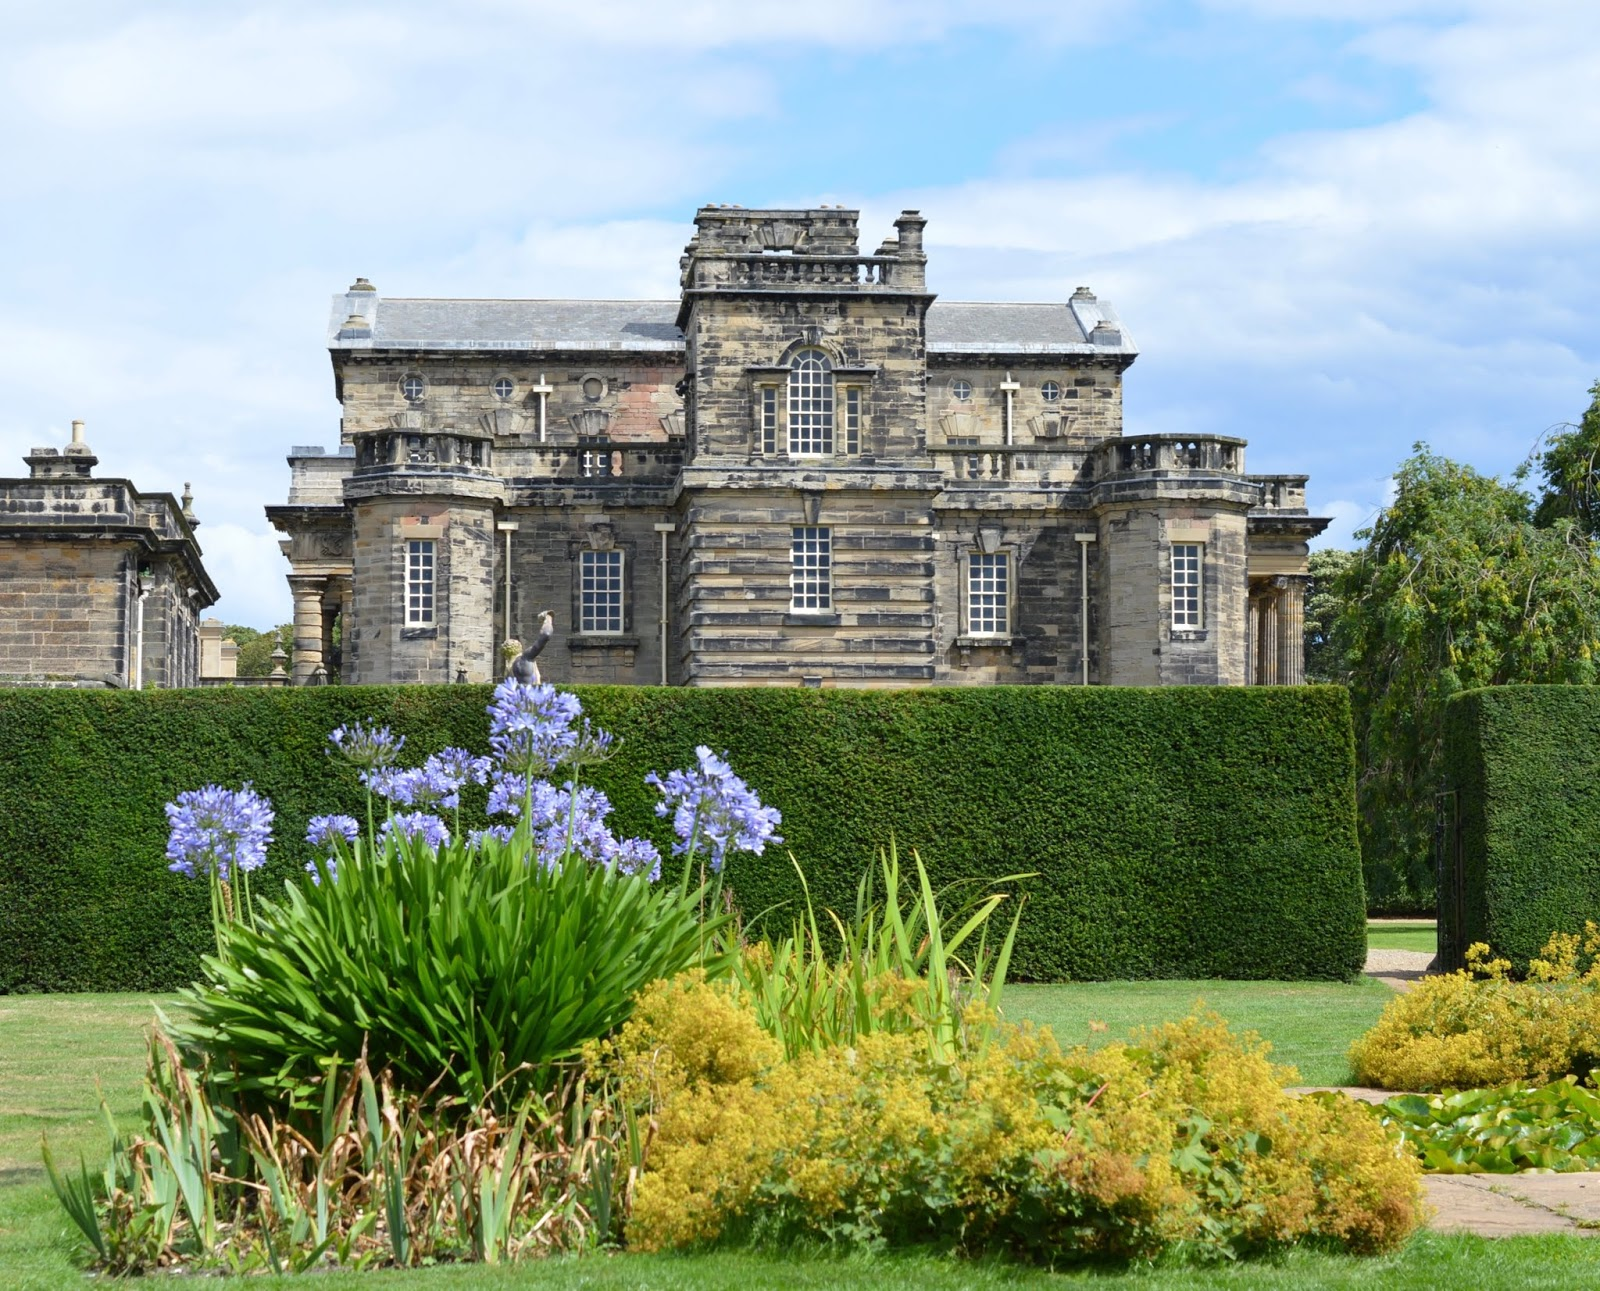 Buy a 3 Month Art Pass for just £15  - Seaton Delaval Hall